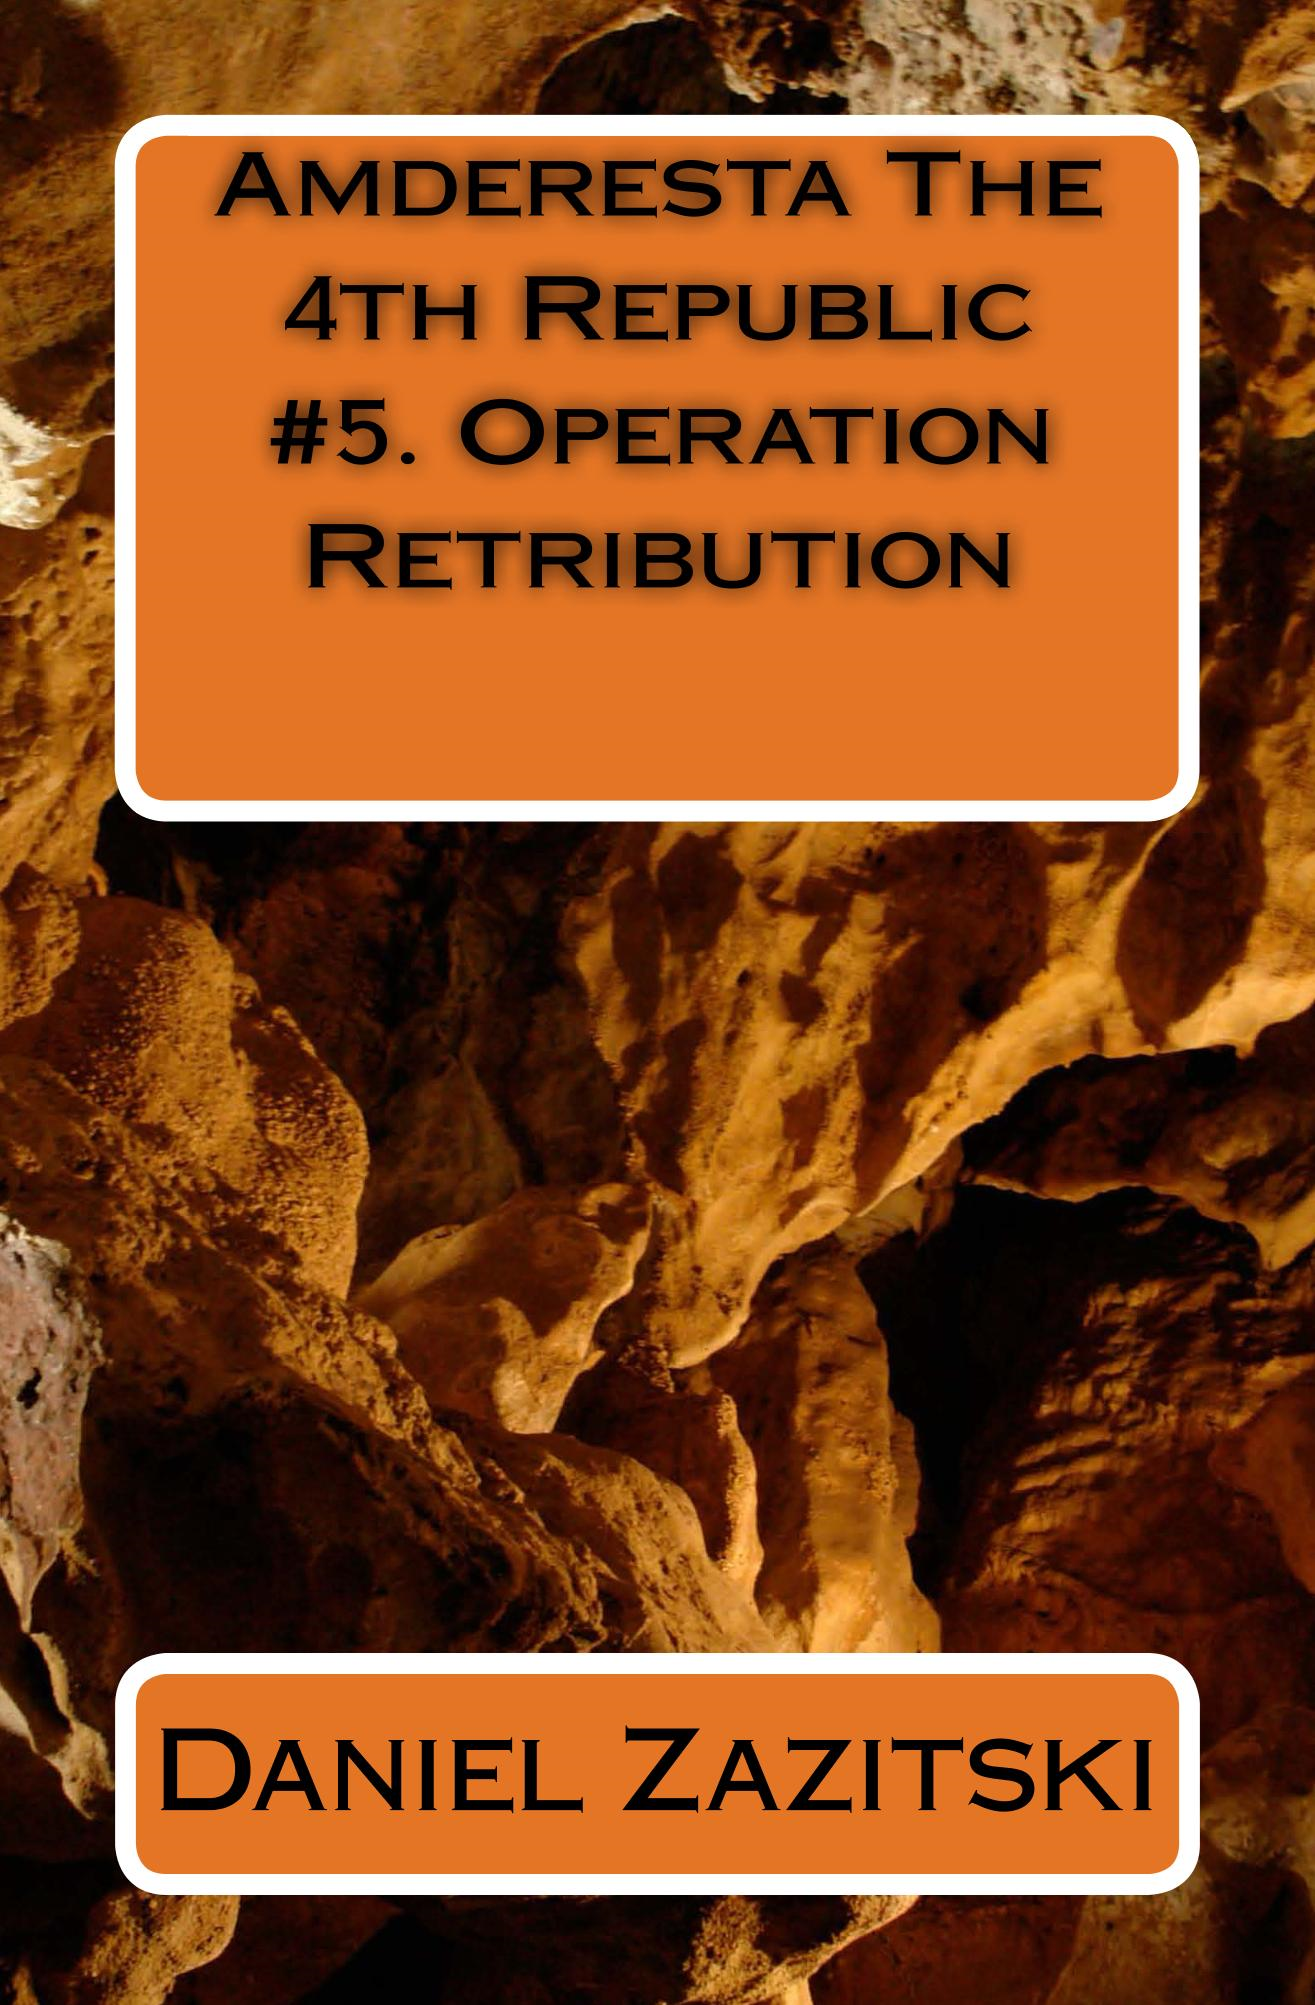 Amderesta The 4th Republic #5. Operation Retribution